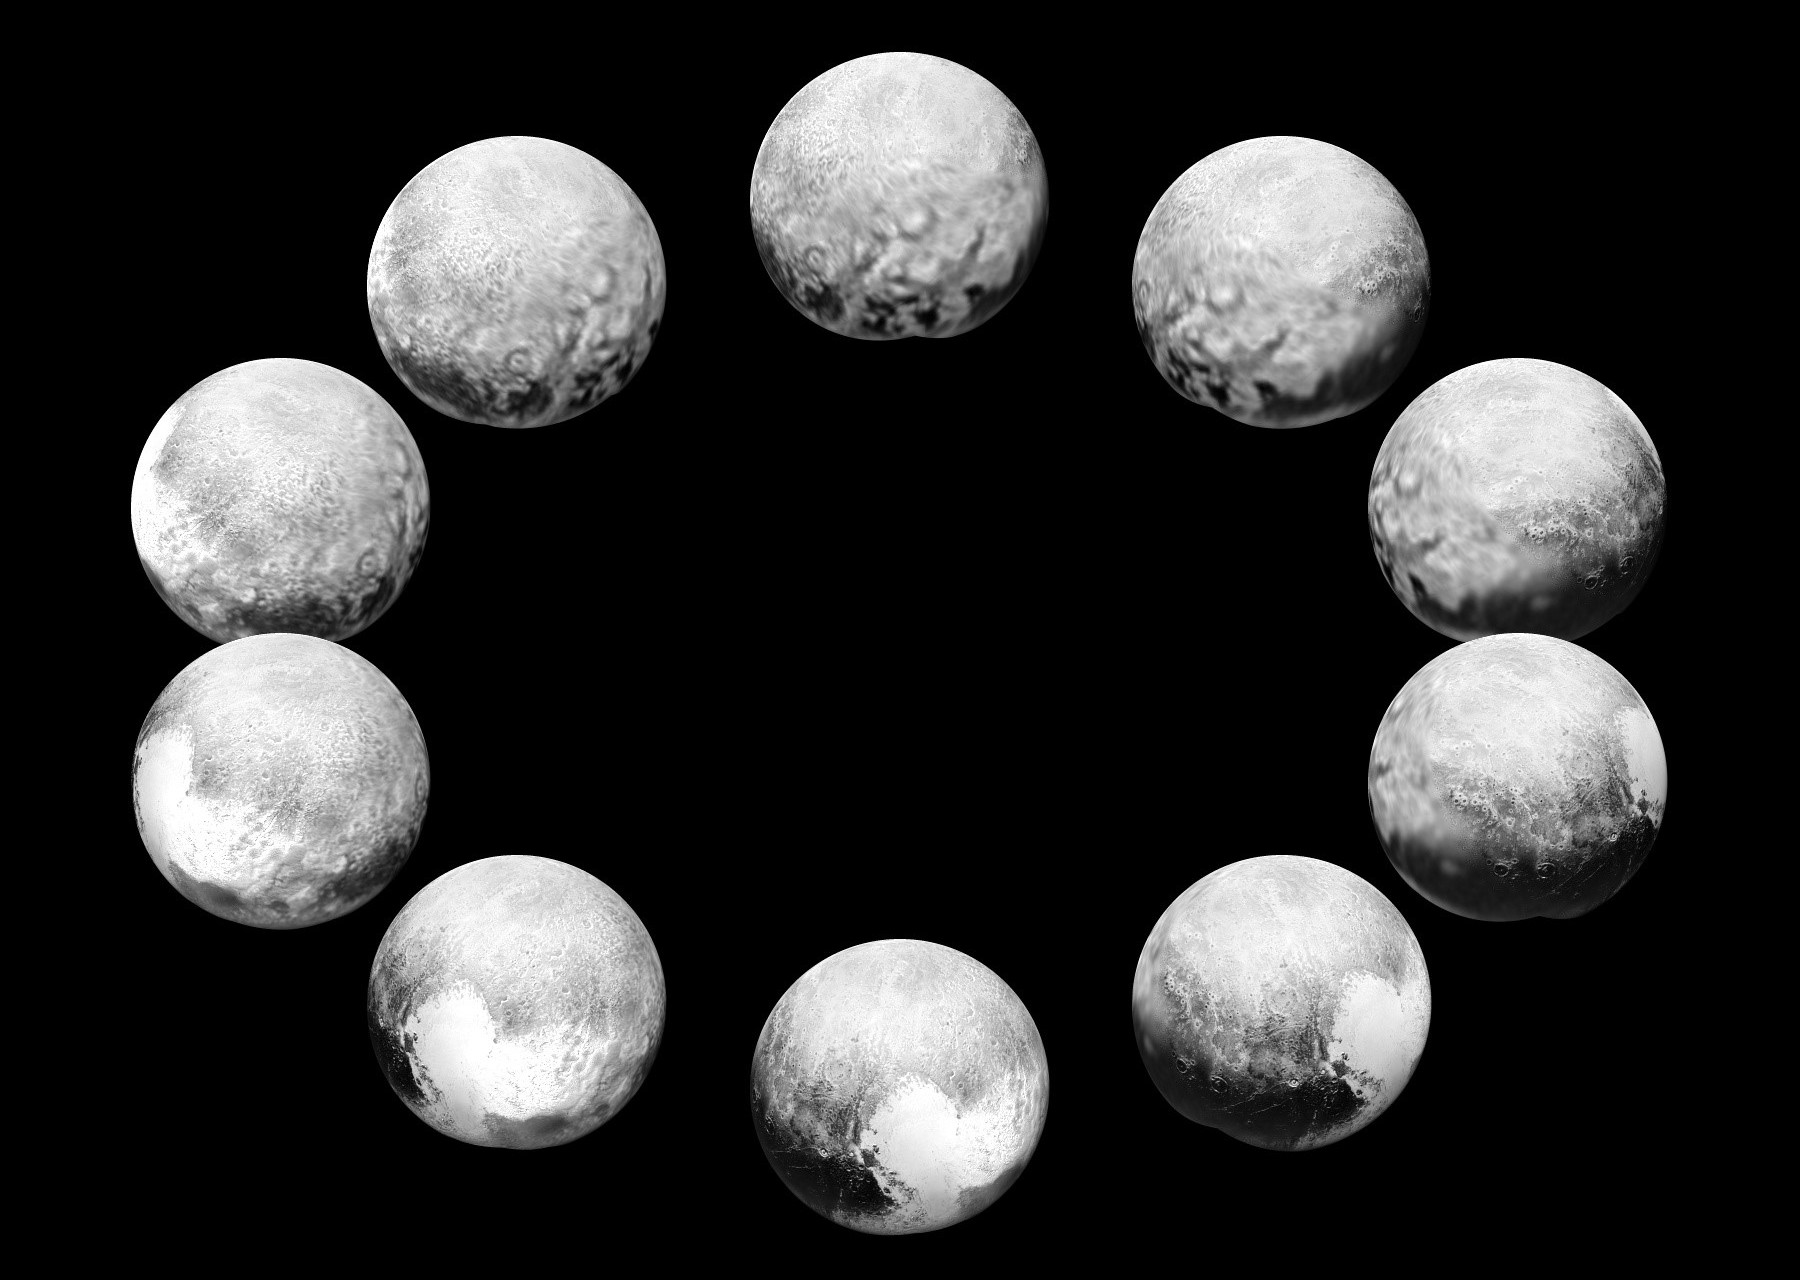 """On approach in July 2015, the cameras on NASA's New Horizons spacecraft captured Pluto rotating over the course of a full """"Pluto day."""" The best available images of each side of Pluto taken during approach have been combined to create this view of a full rotation. Click the image for a full-size version. Image credits: NASA/JHUAPL/SwRI."""